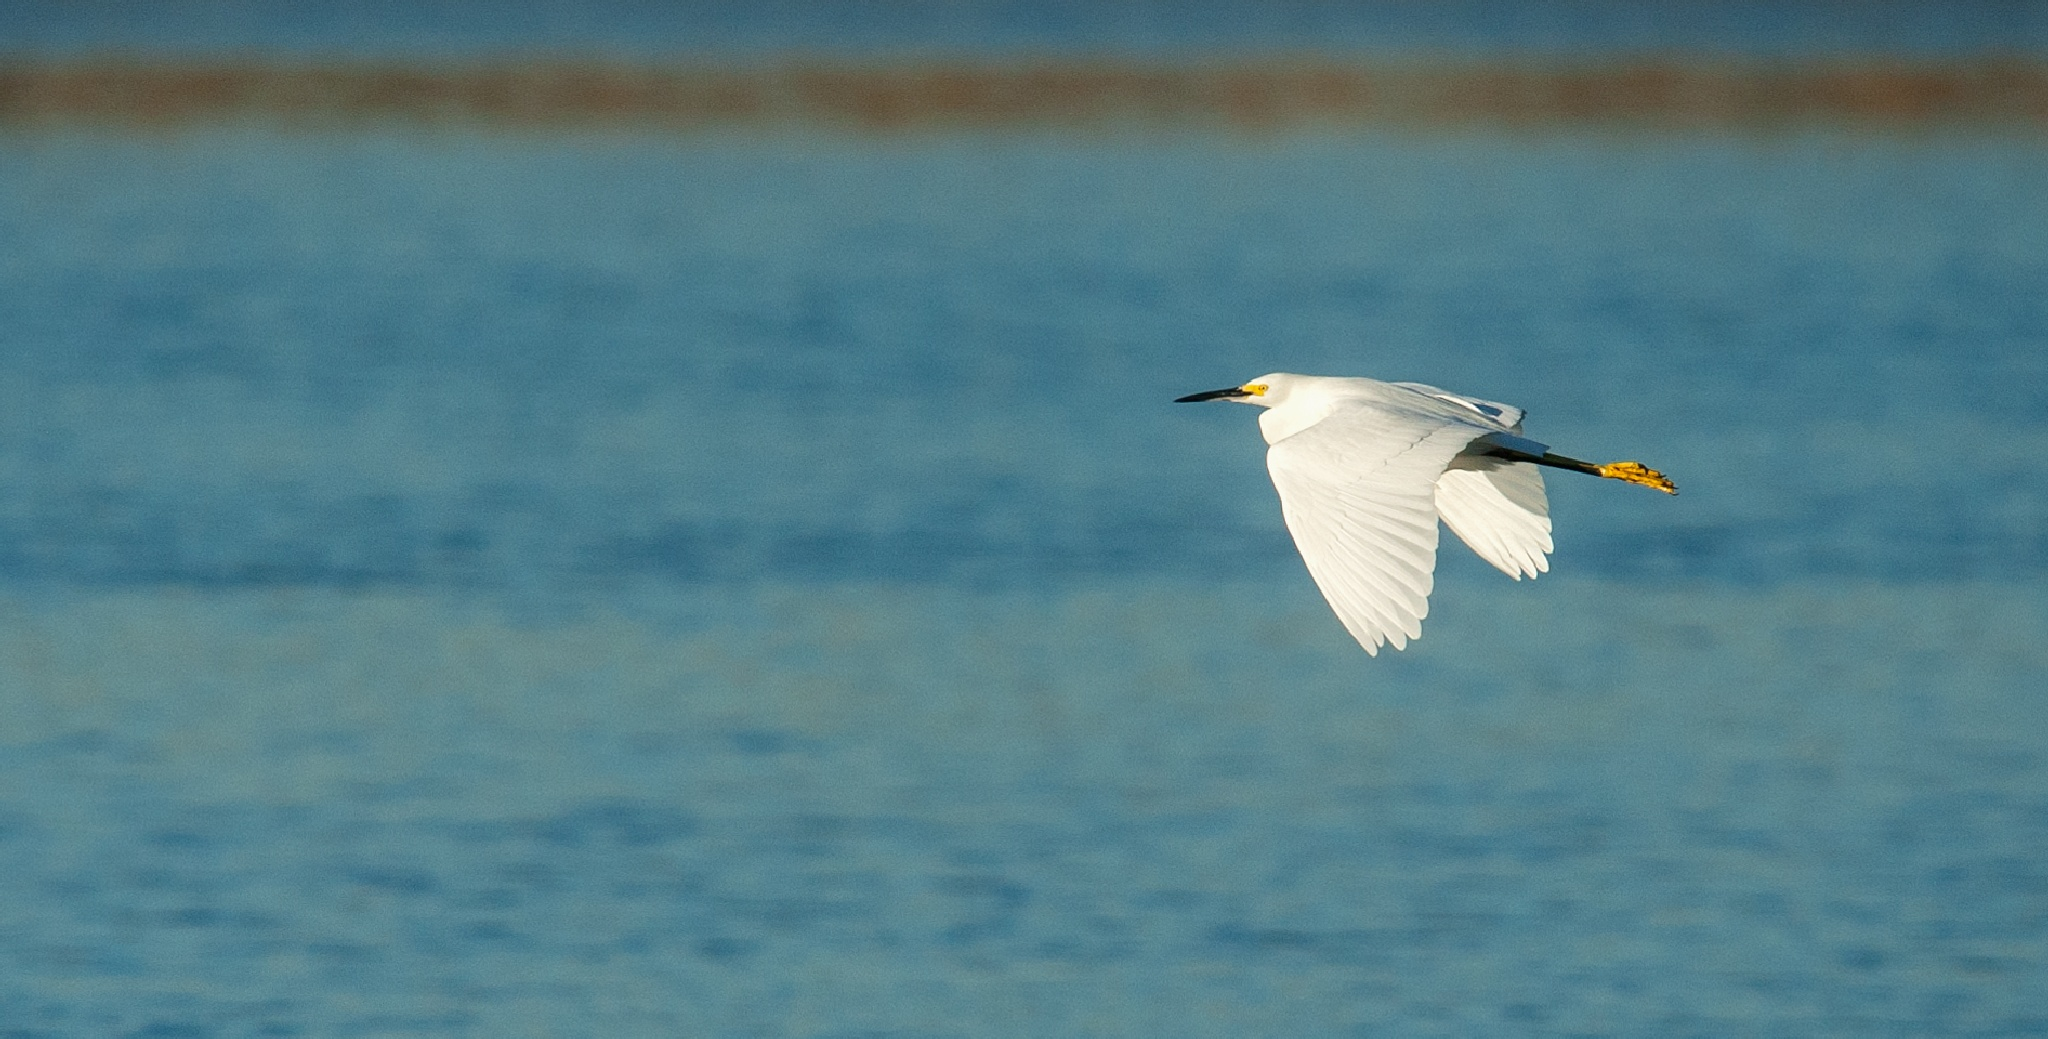 A white egret at Bolsa Chica Ecological Reserve by blueskyoveraquatic